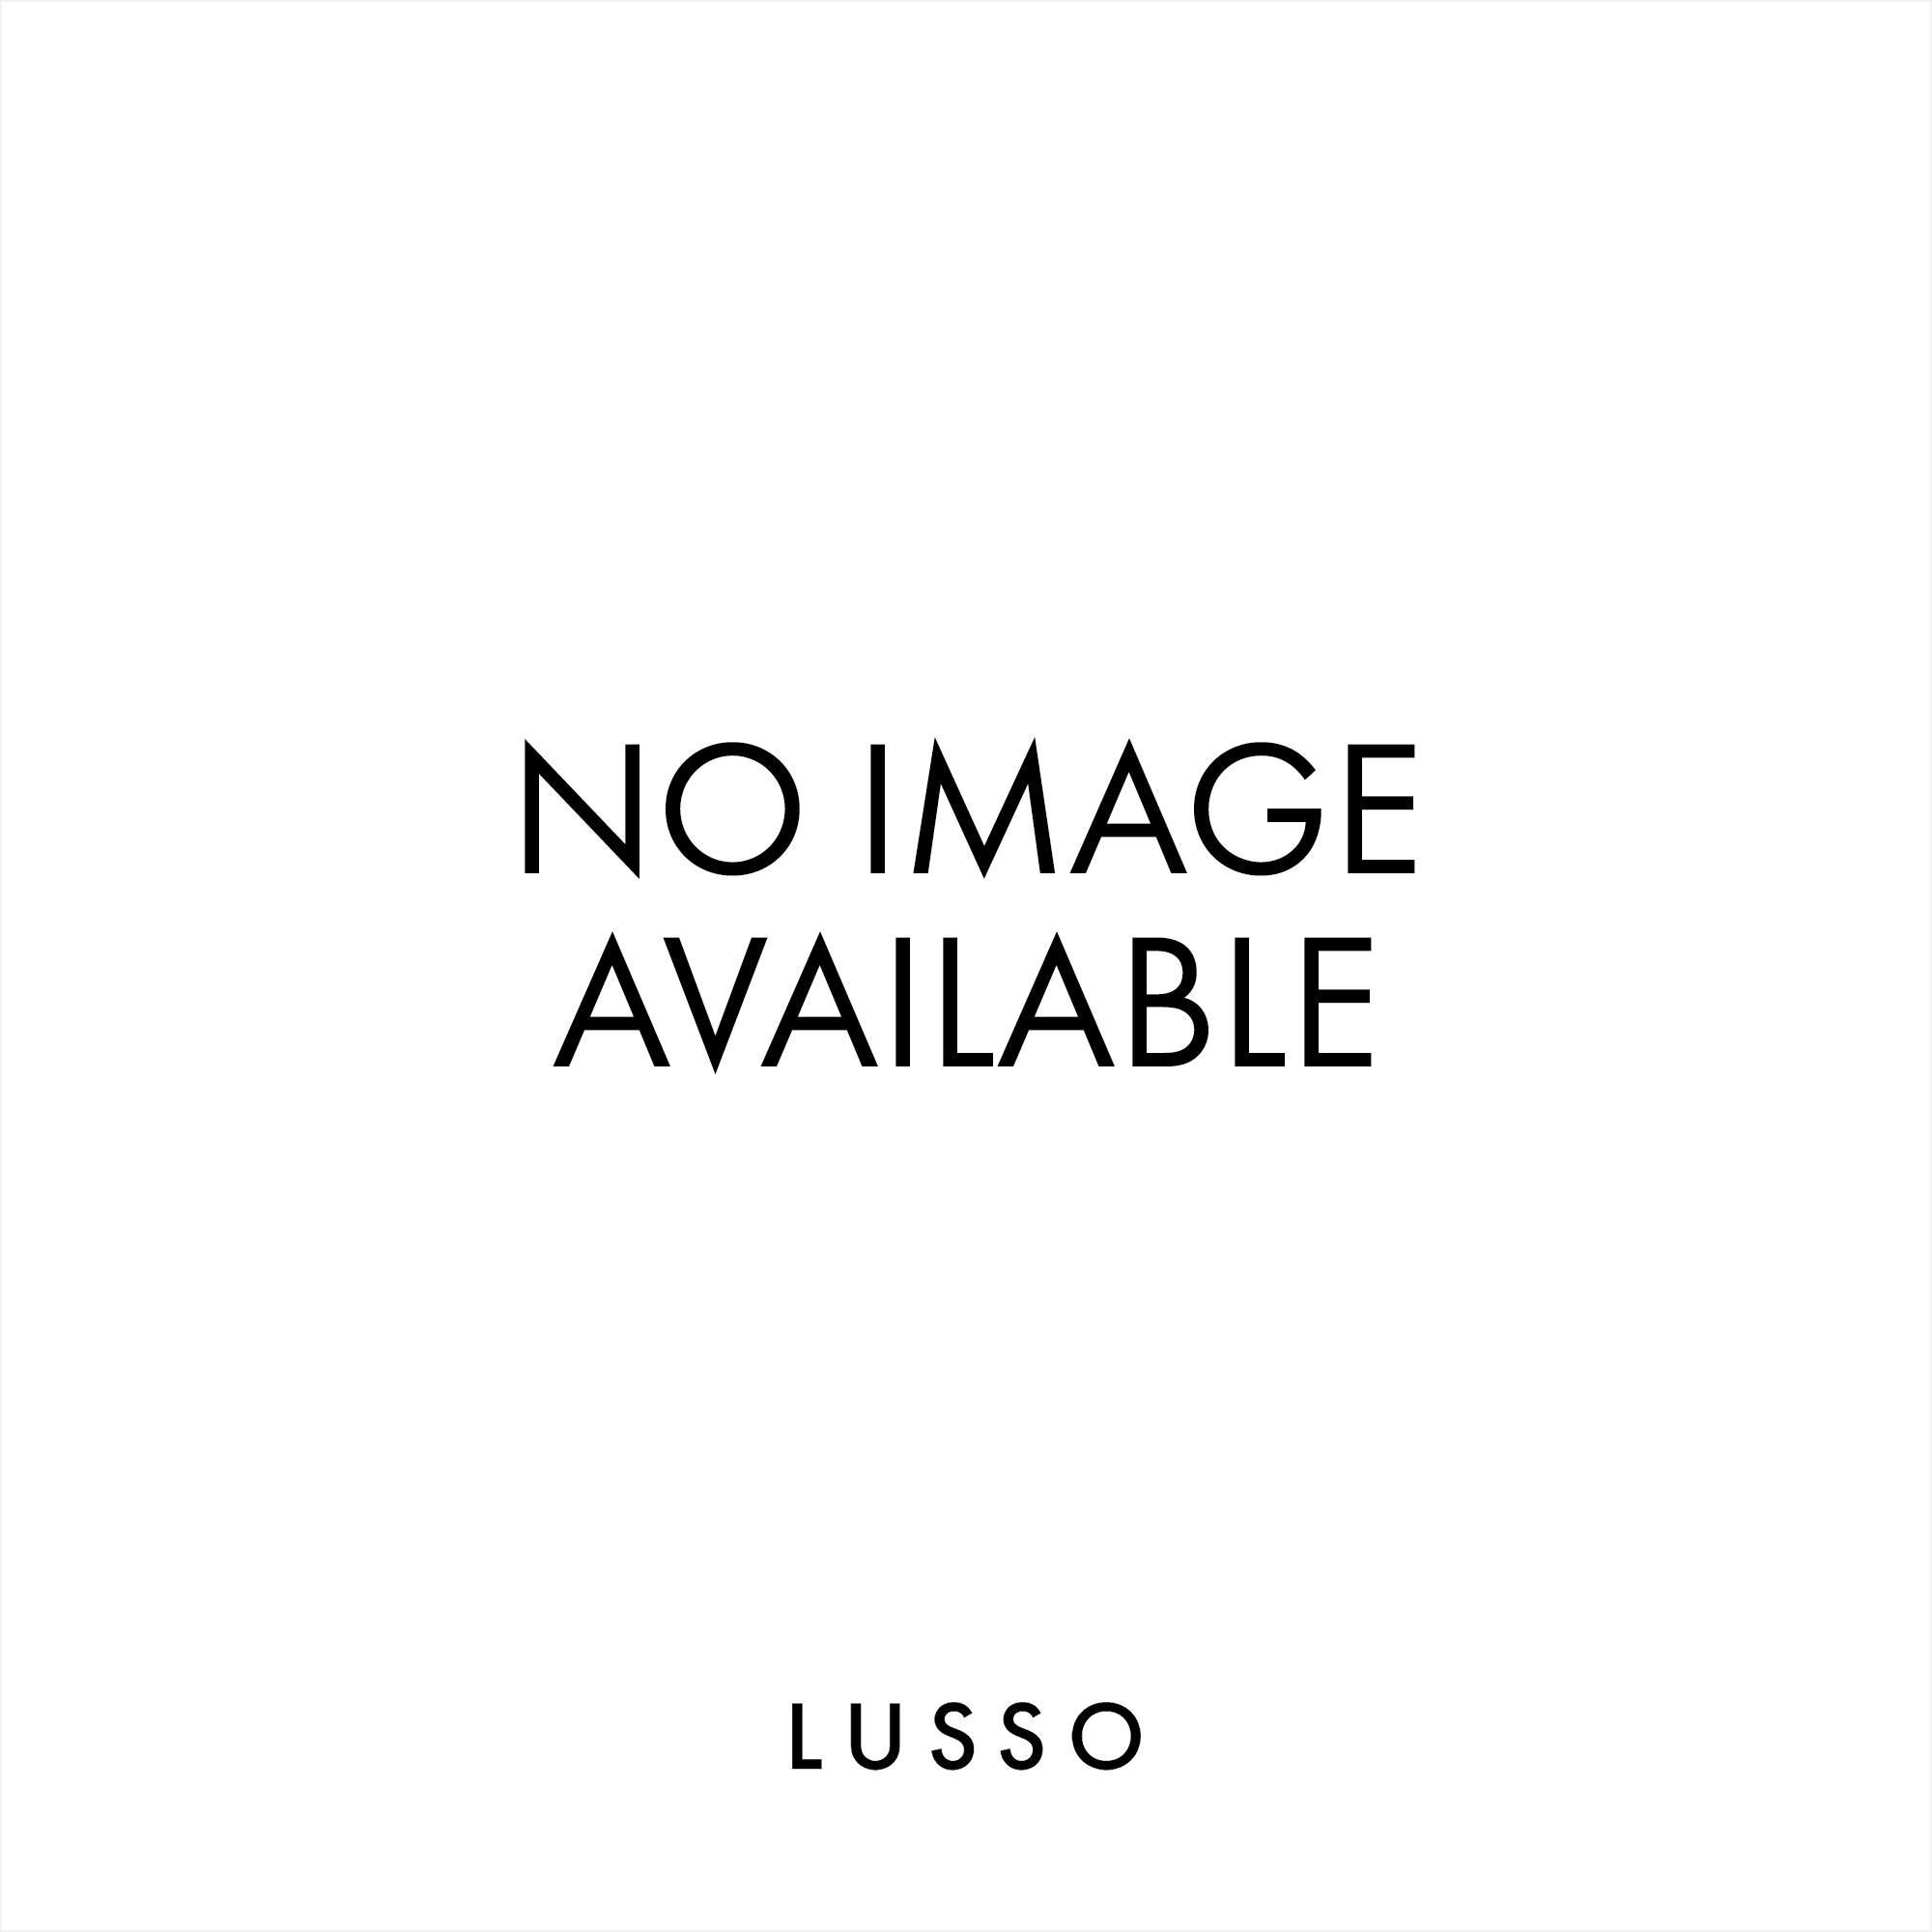 Lusso Stone Morini Stone Resin Solid Surface Freestanding Bath 1700 Pale Grey Quartz